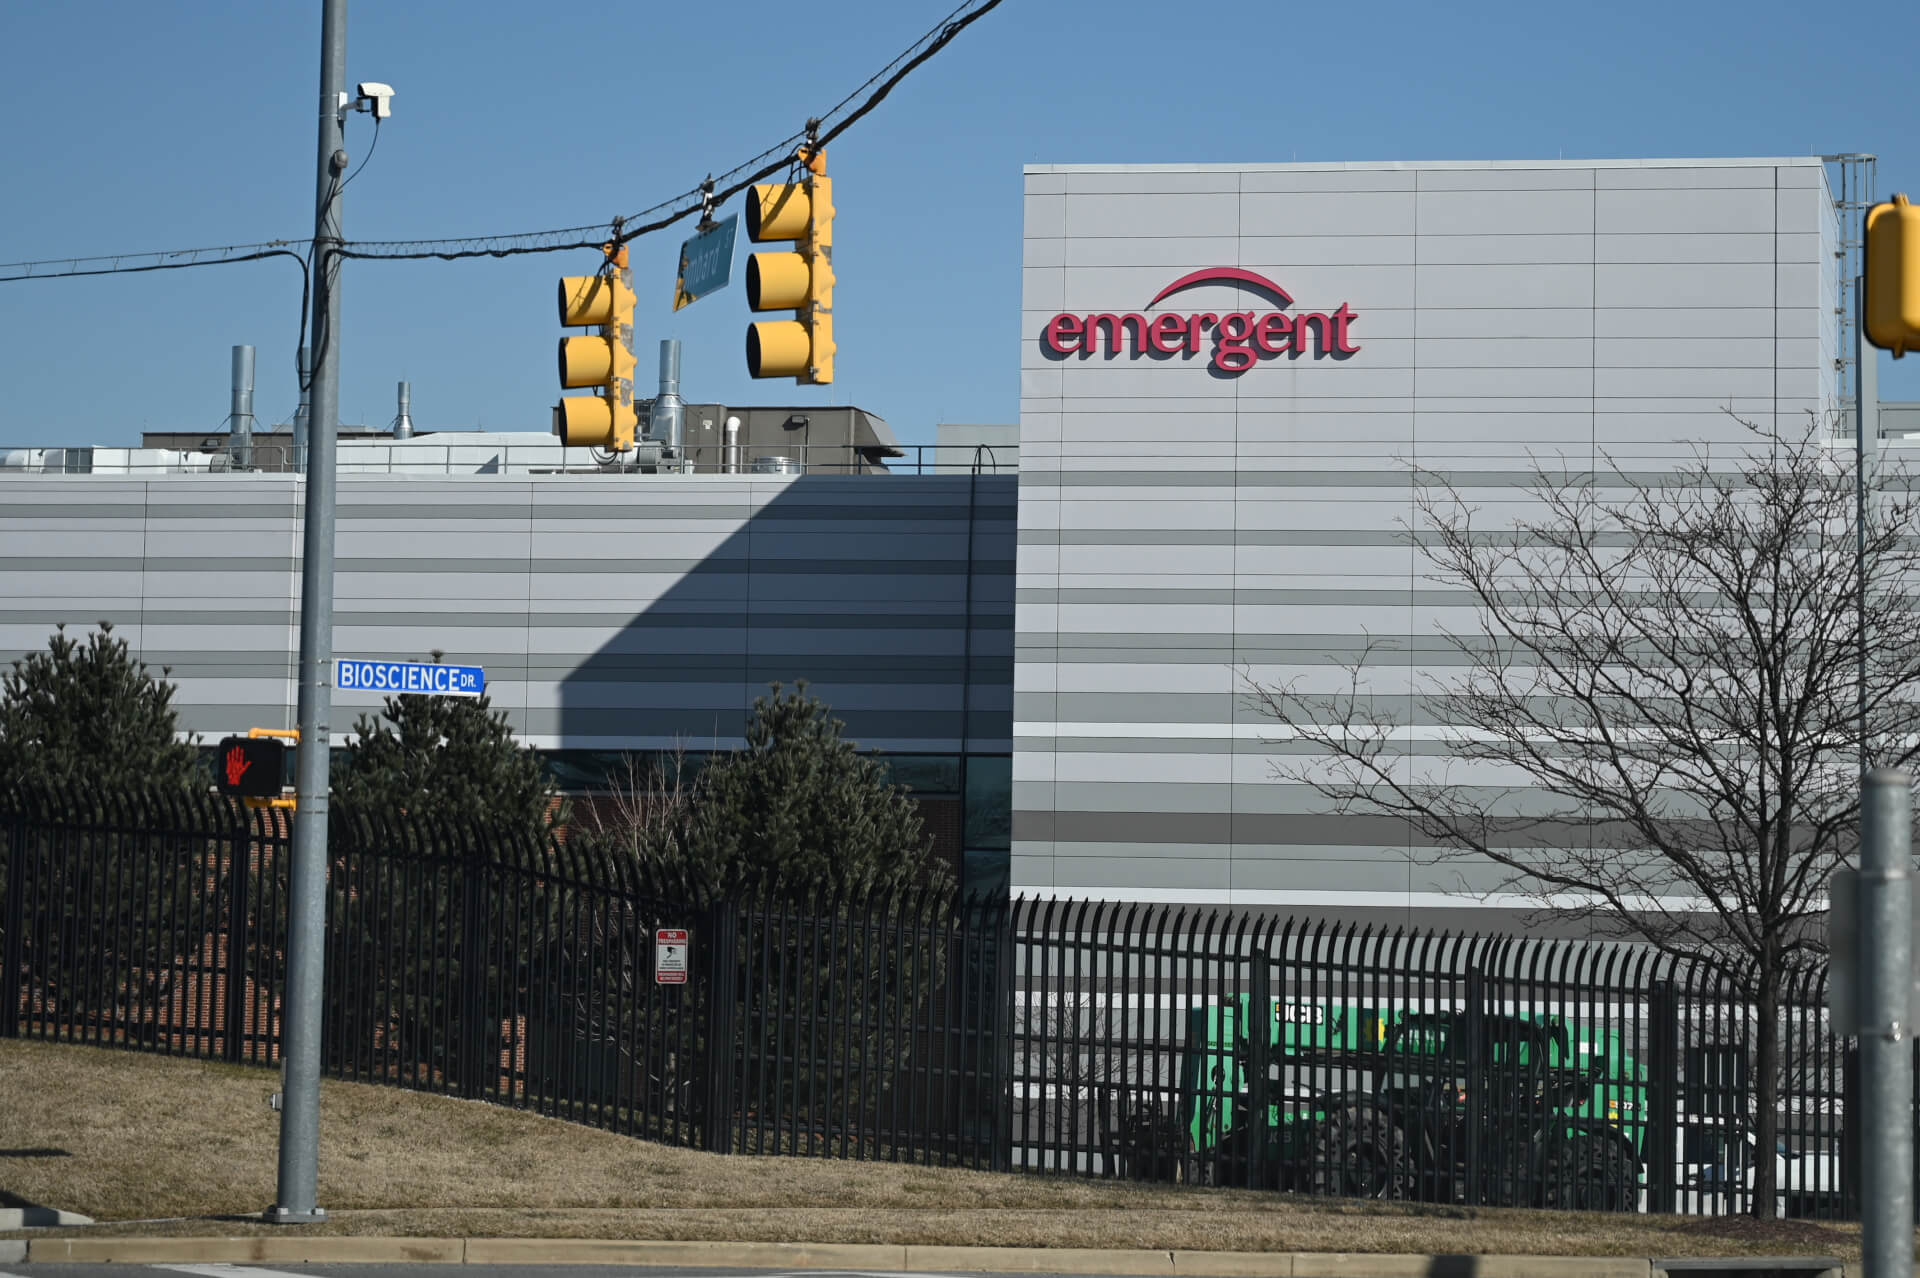 Not one usable vaccine from plant in Baltimore which received millions in federal aid